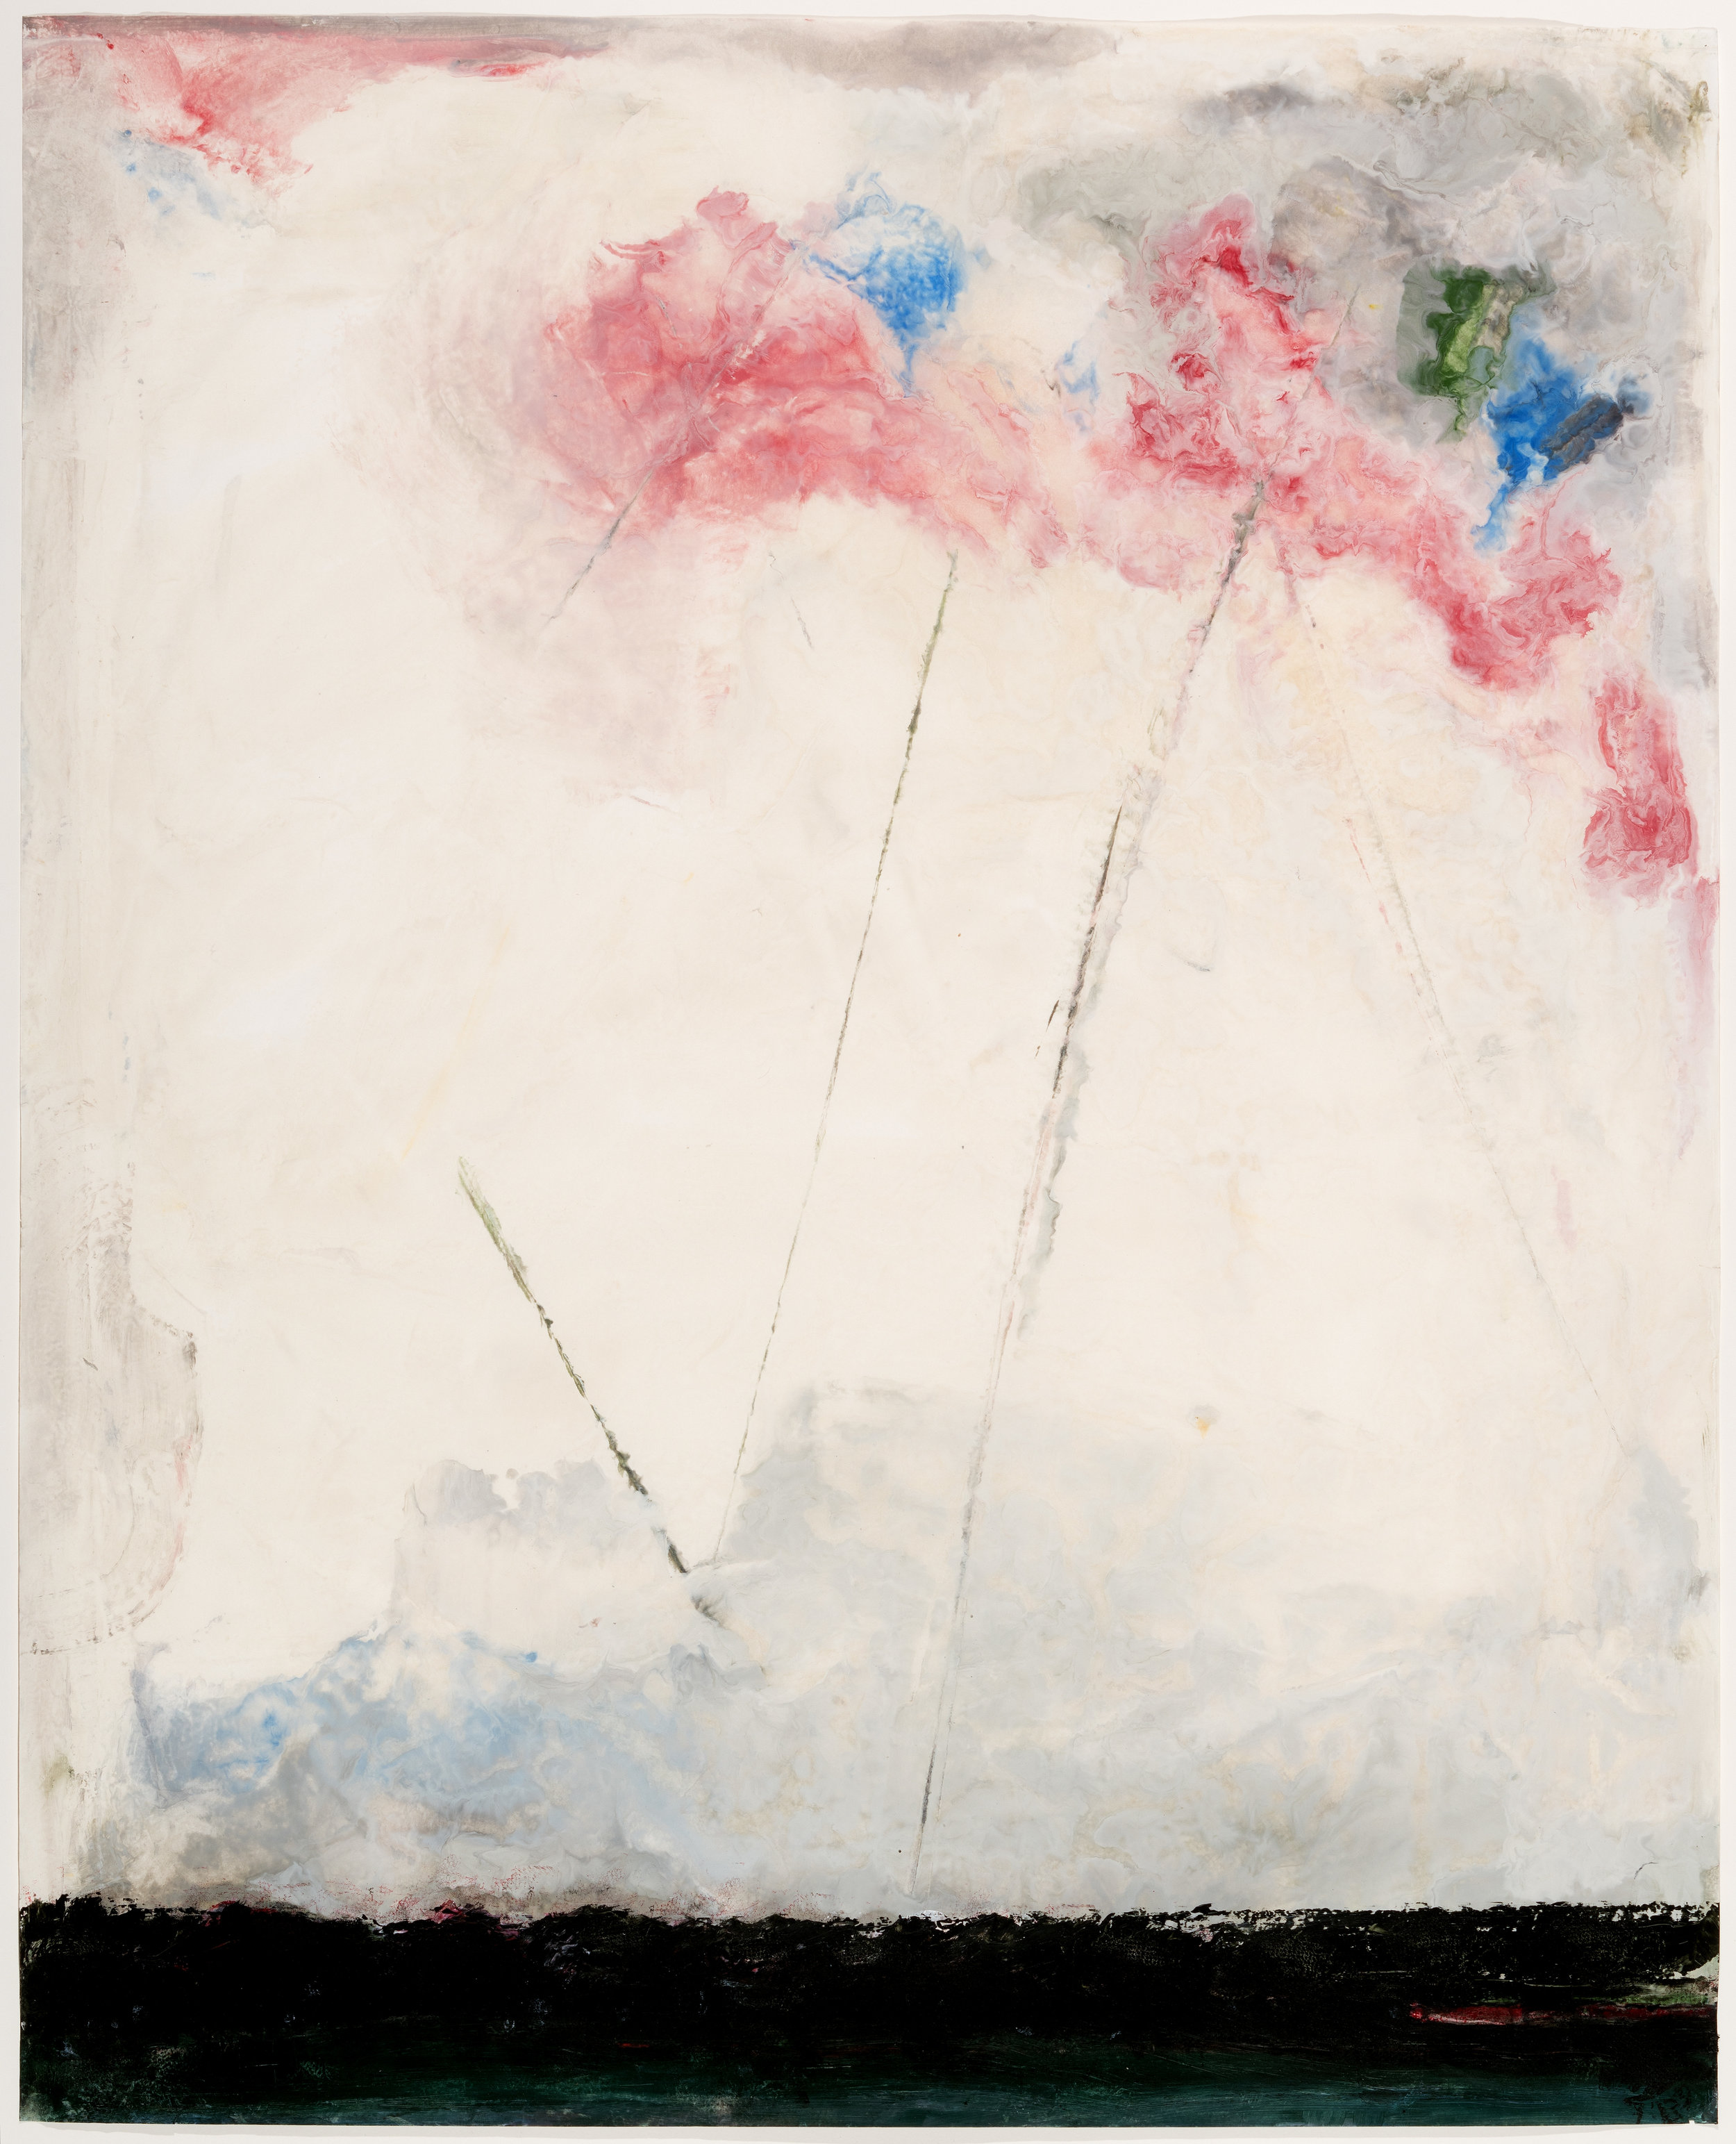 Lolli Pop Flowers, 2018, encaustic on rice paper, 47 x 39 in, SOLD